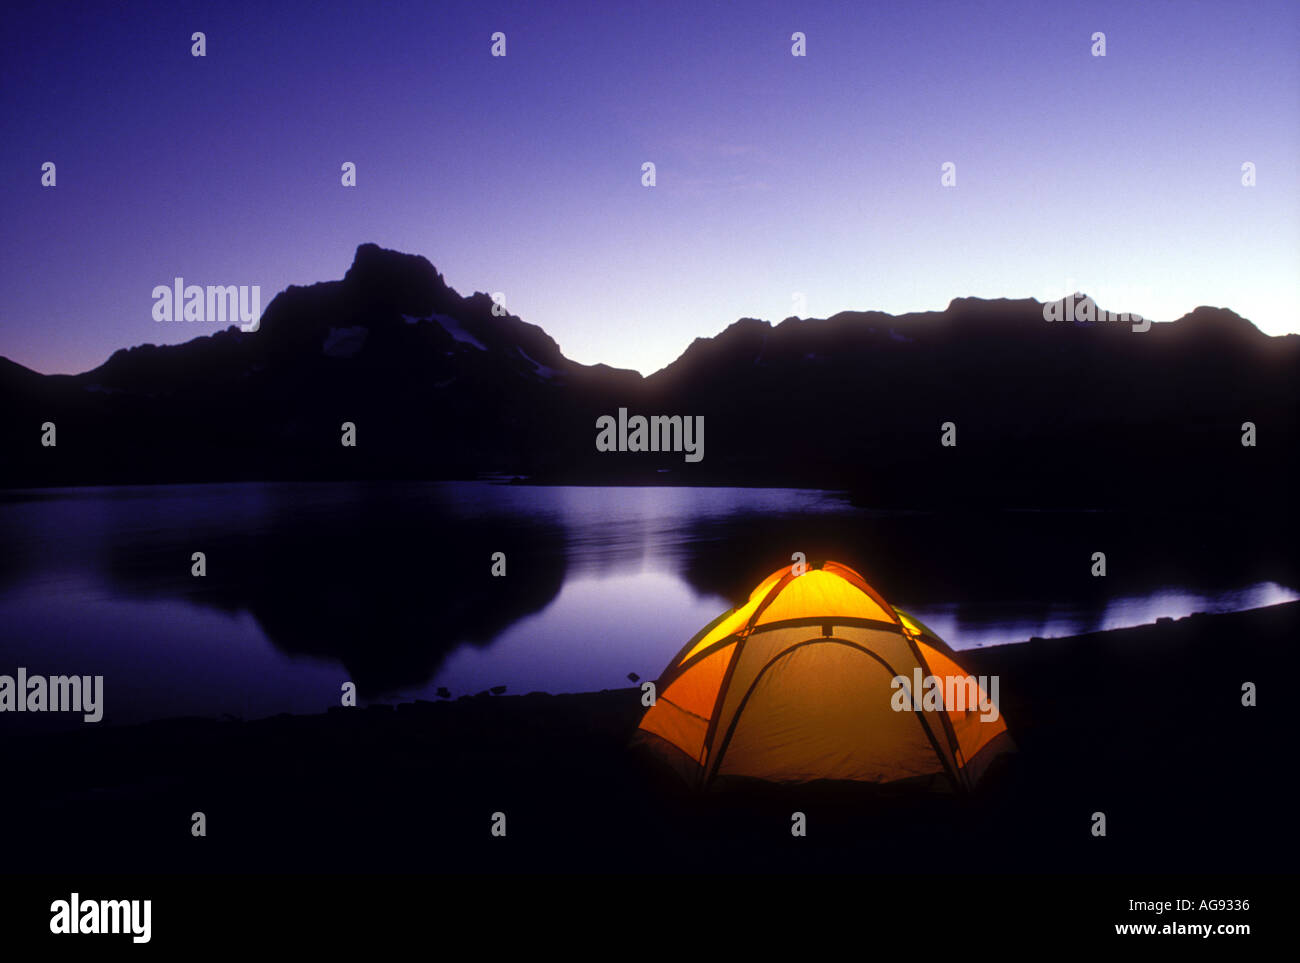 Camping tent beside Thousand Island Lake in the Sierra Nevada Mountains California Property released image - Stock Image